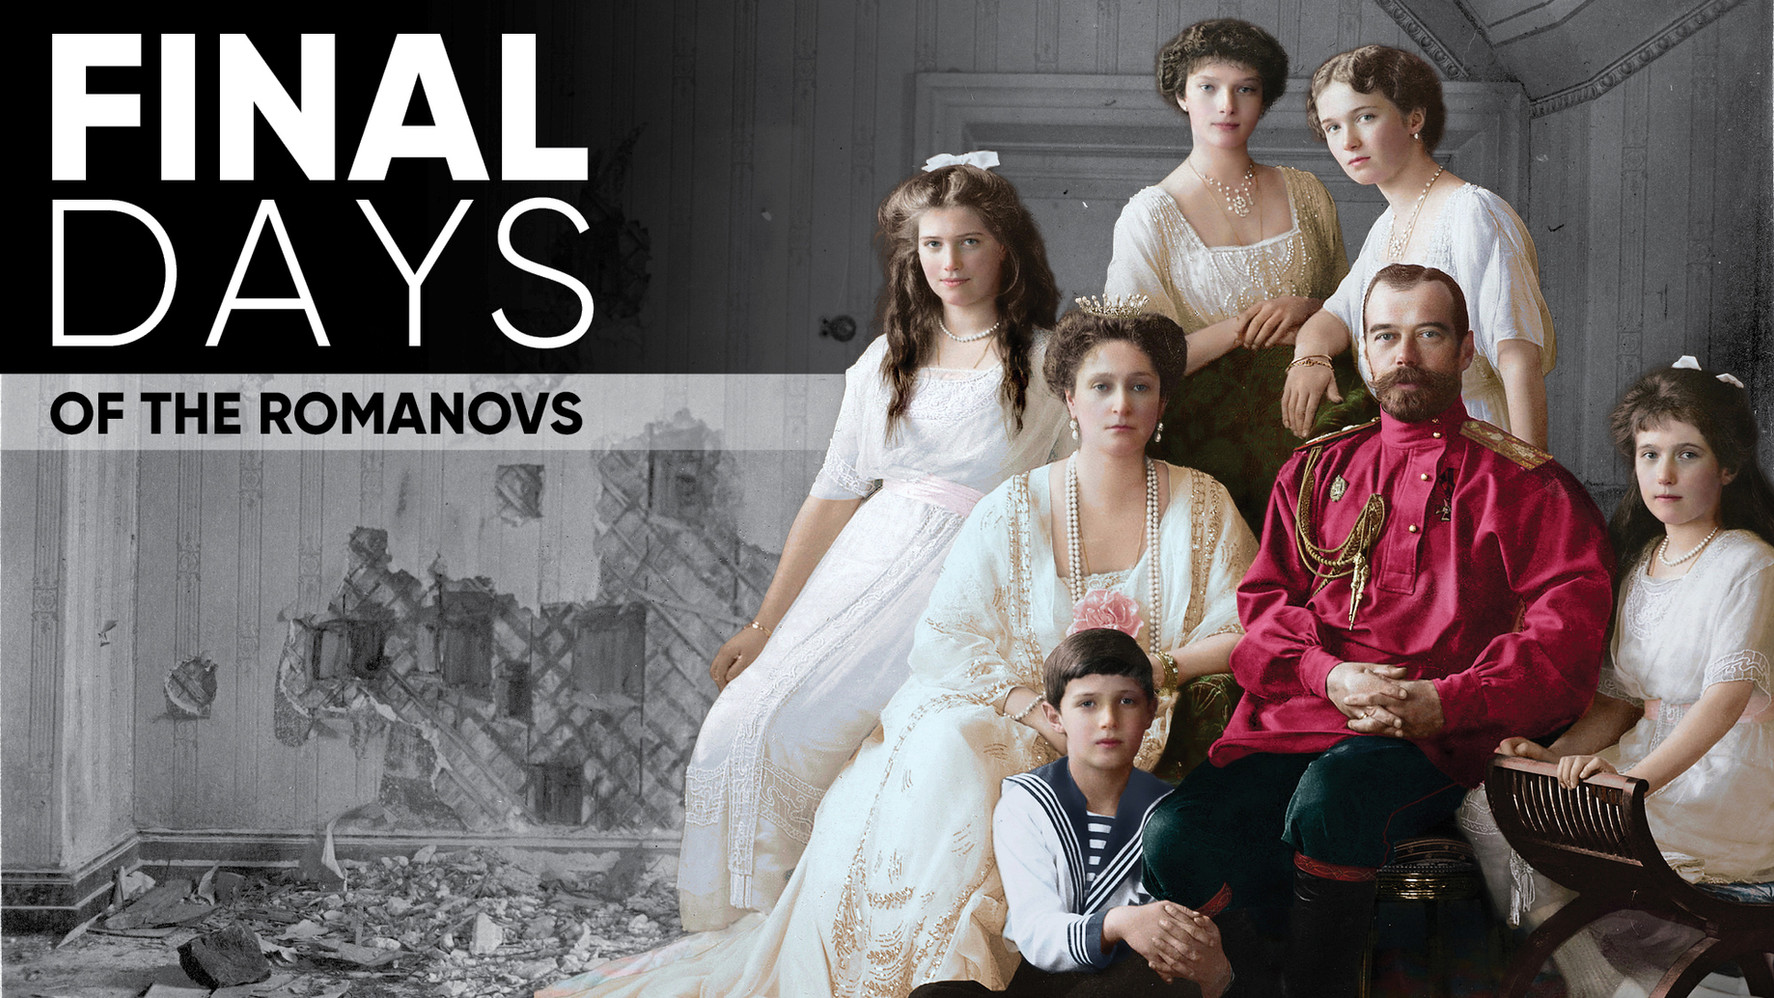 The Final Days of the Romanovs | Faith in God to the End